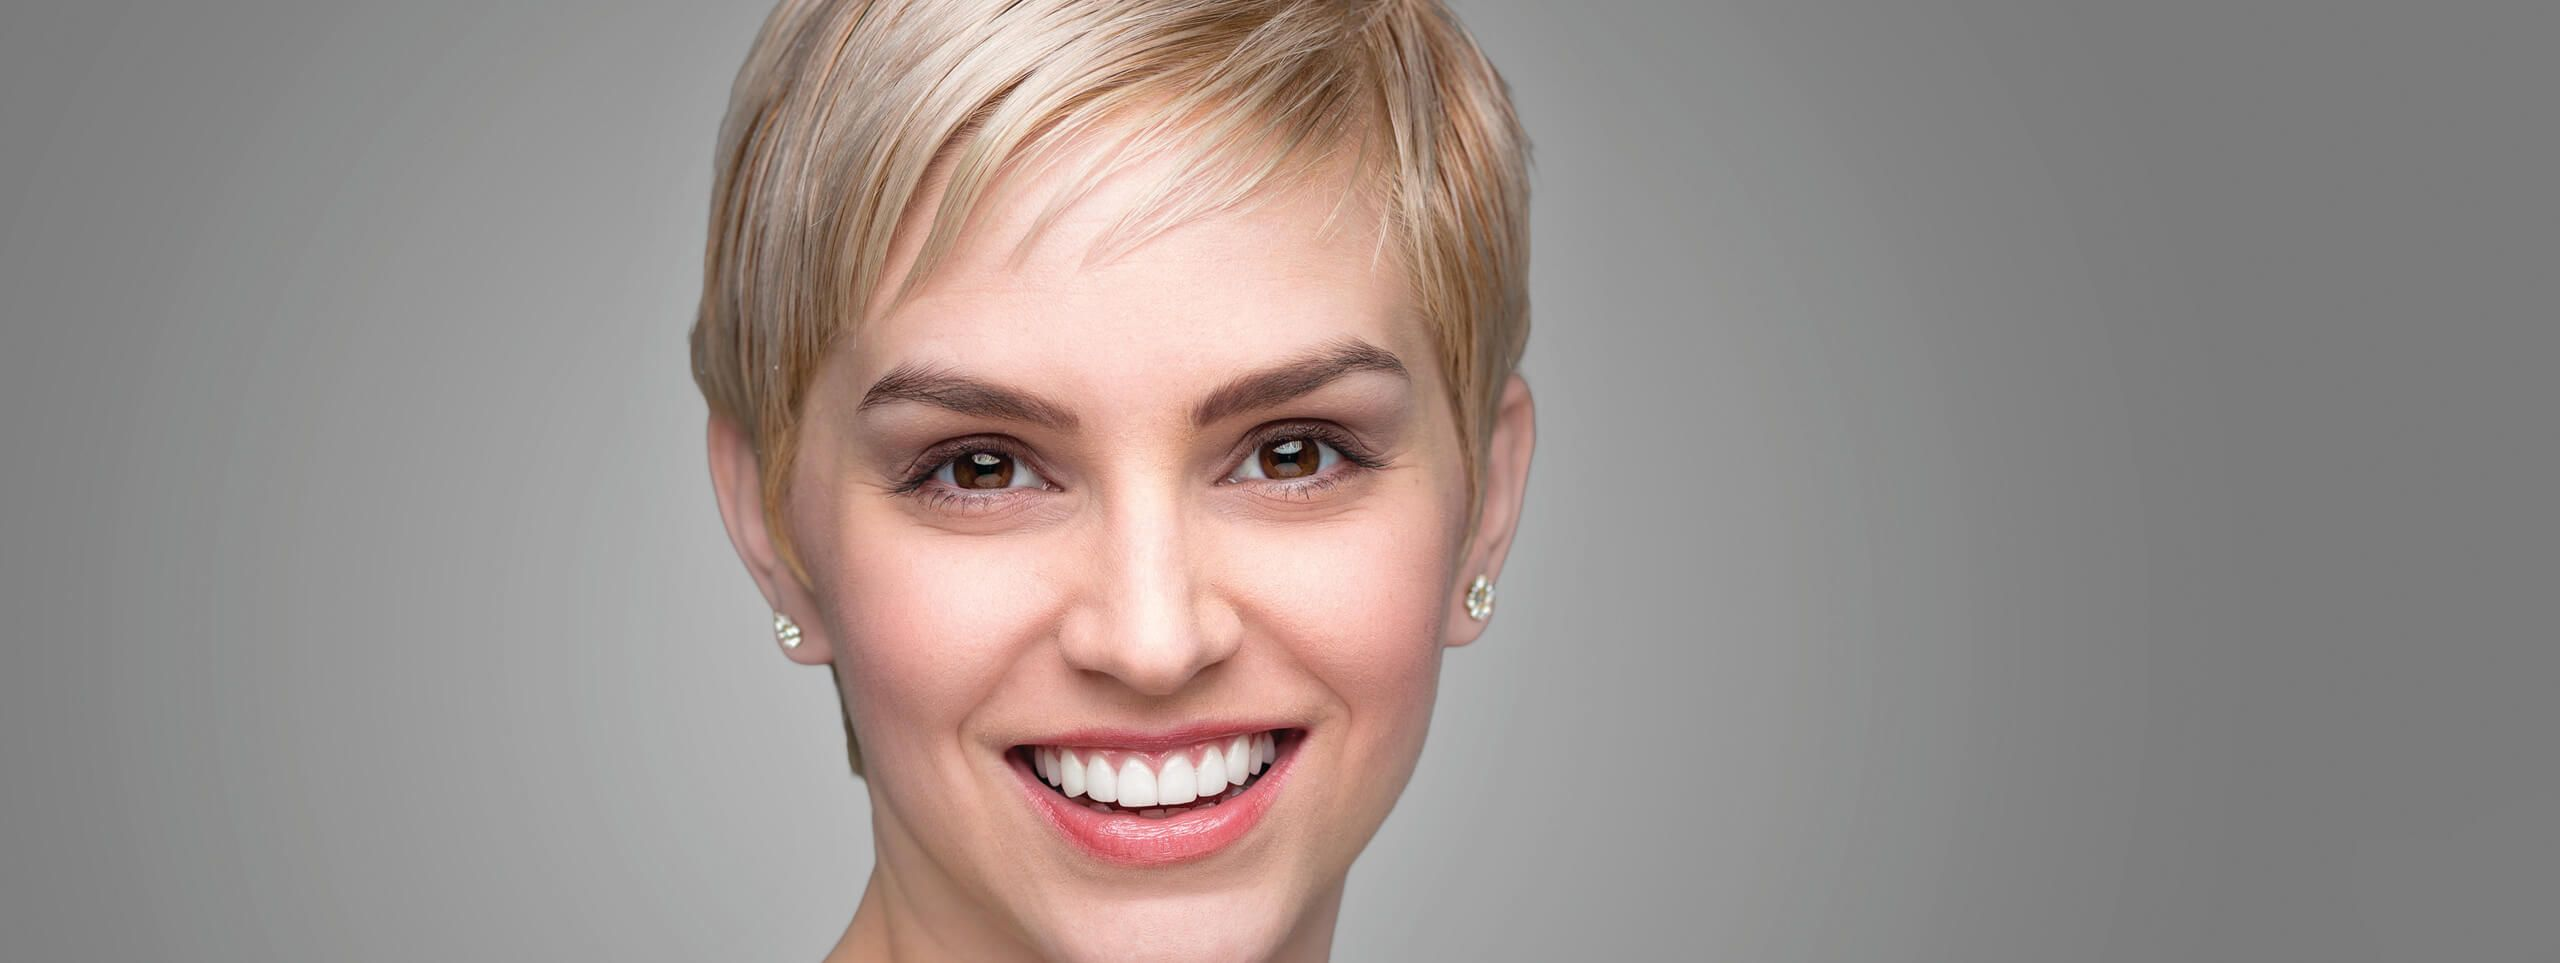 Model with a classic pixie hairstyle